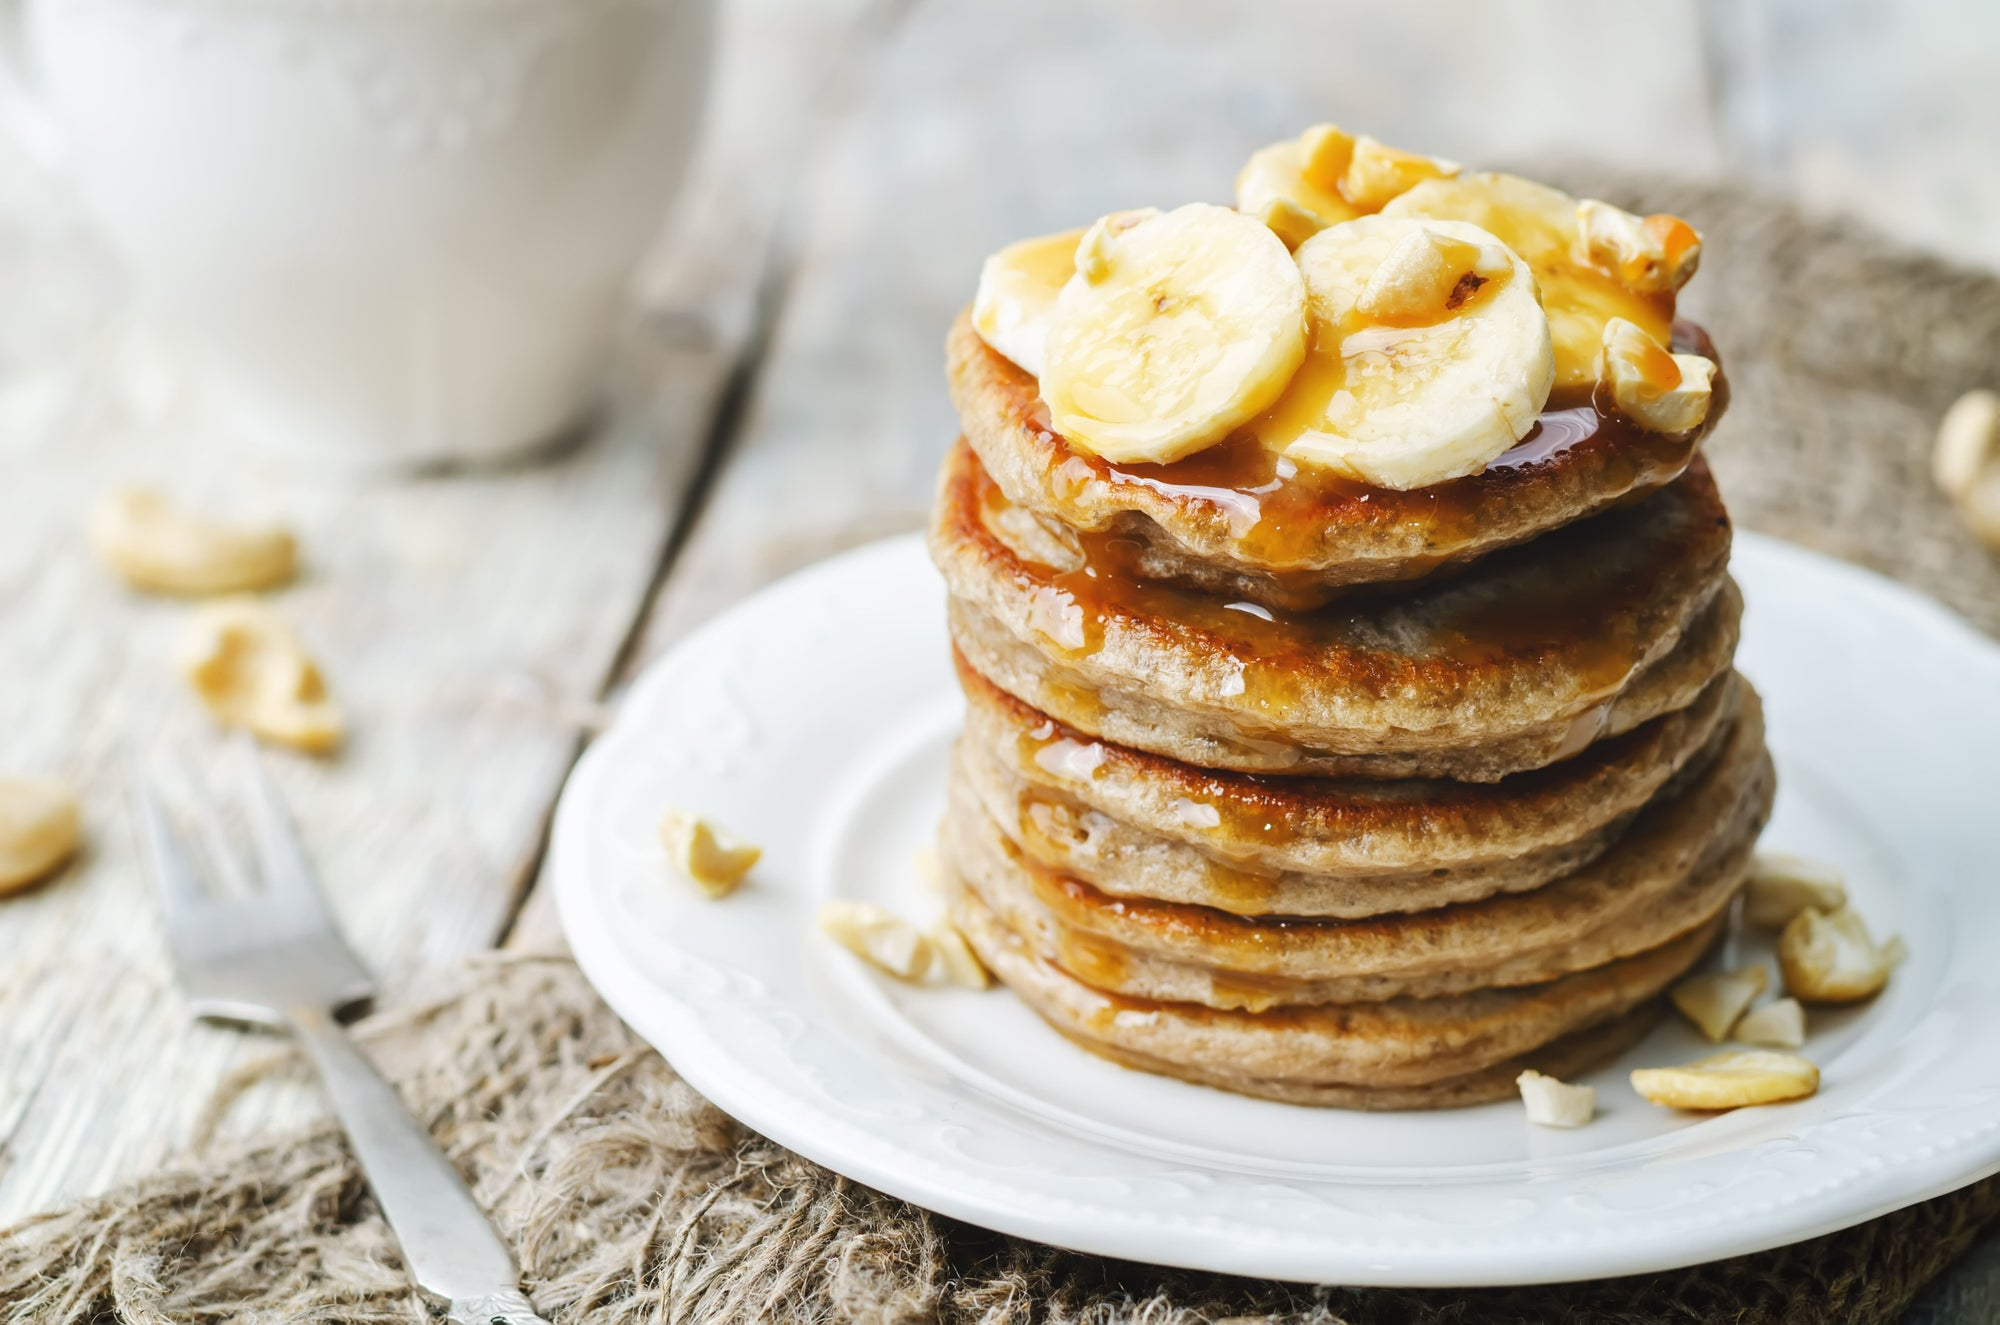 5 Easy and Healthy Recipes using Bananas